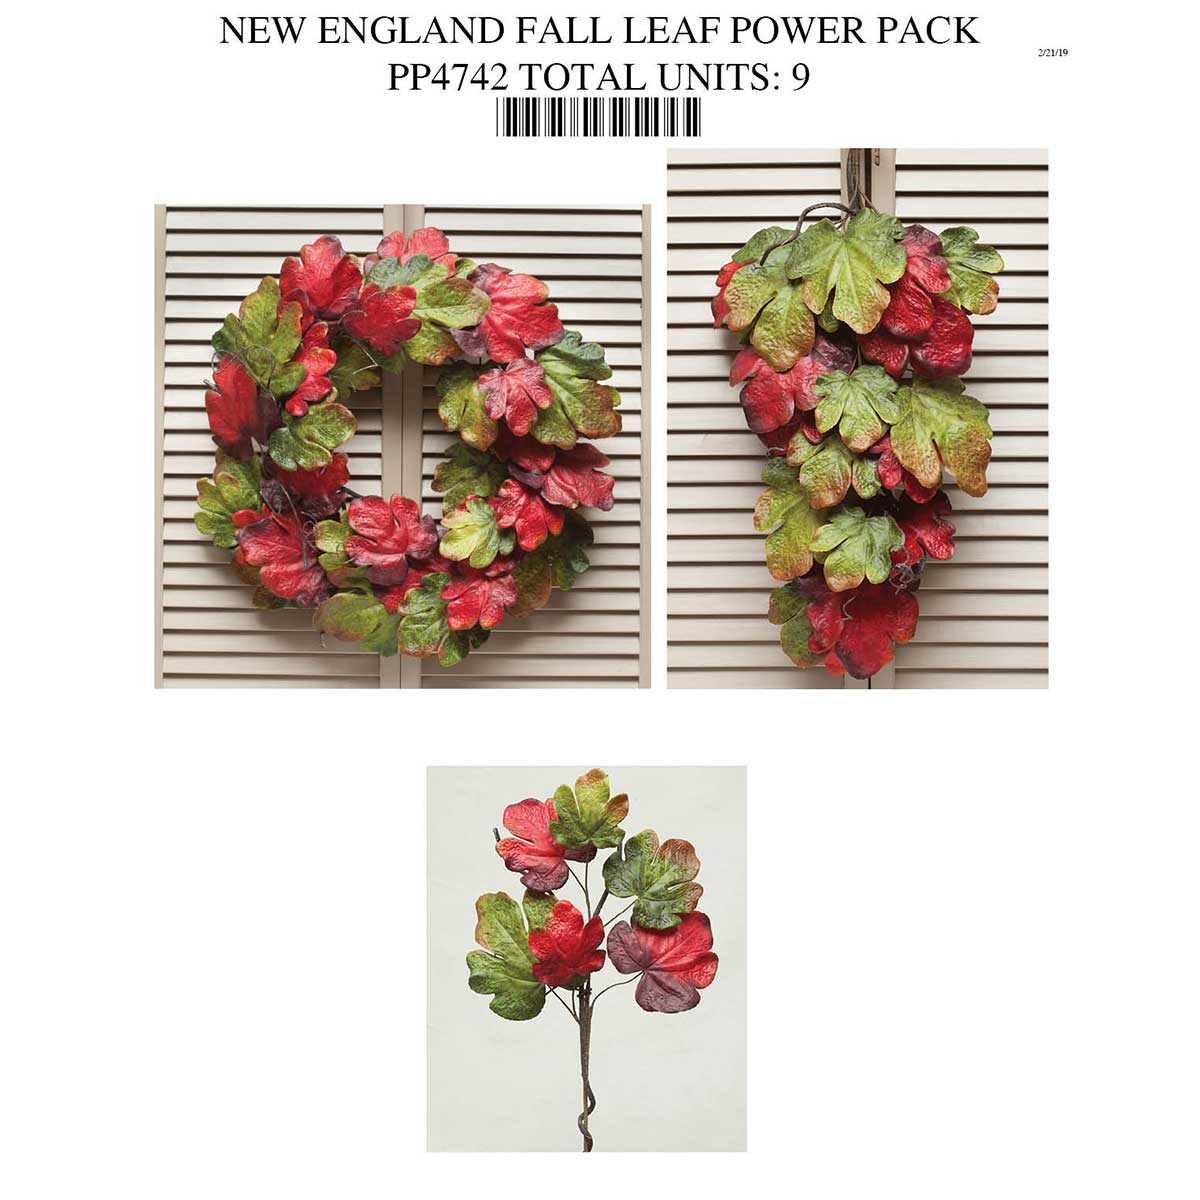 FALL LEAF COLLECTION POWER PACK PP4742